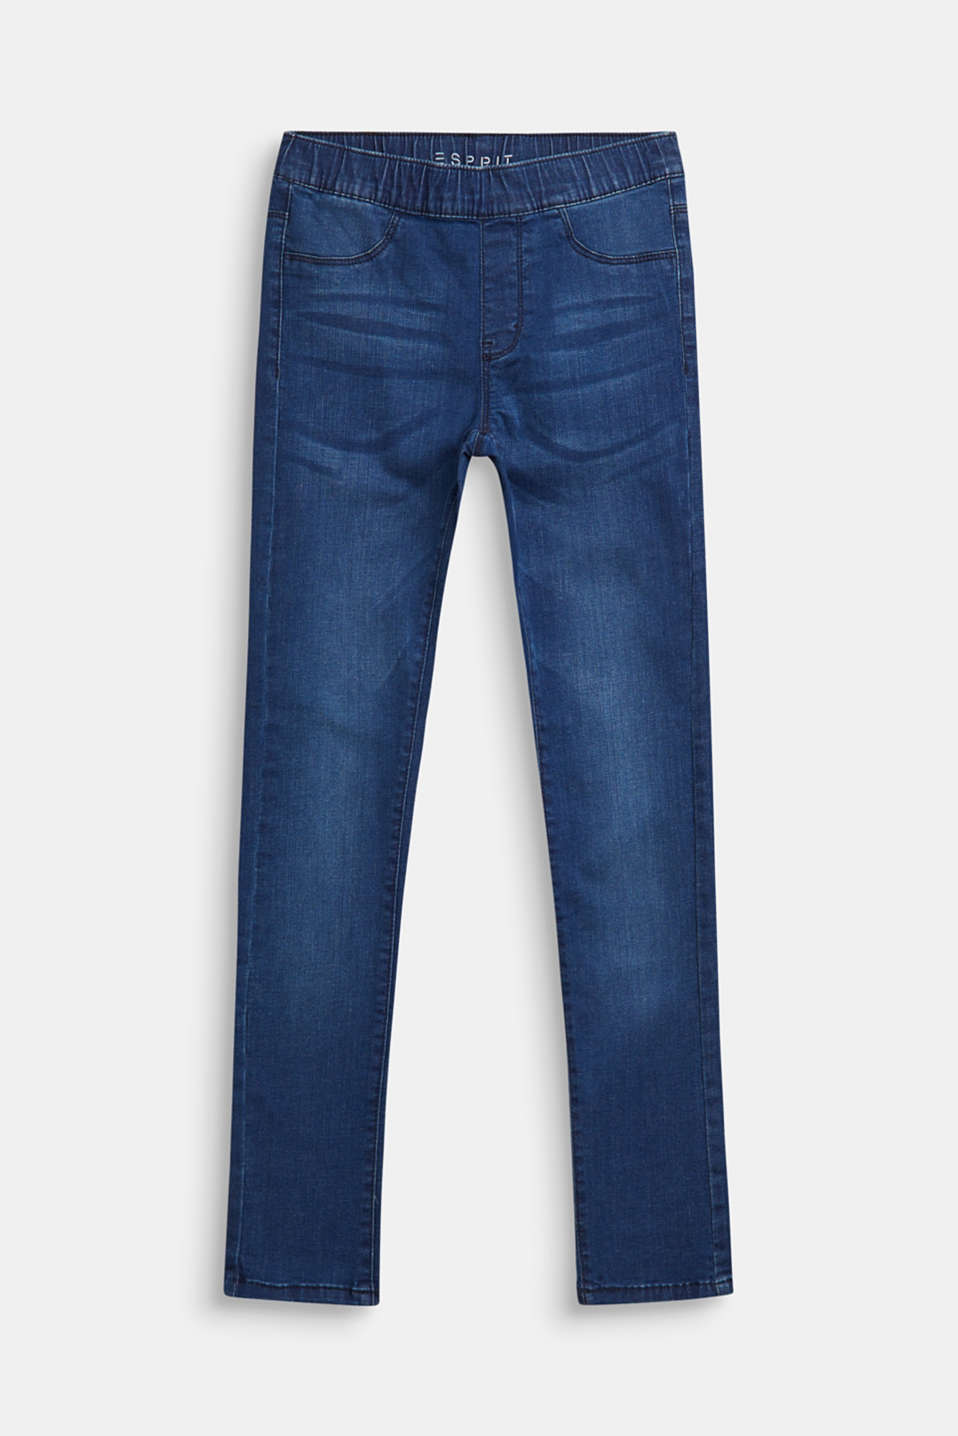 Esprit - Worn-wash jeggings